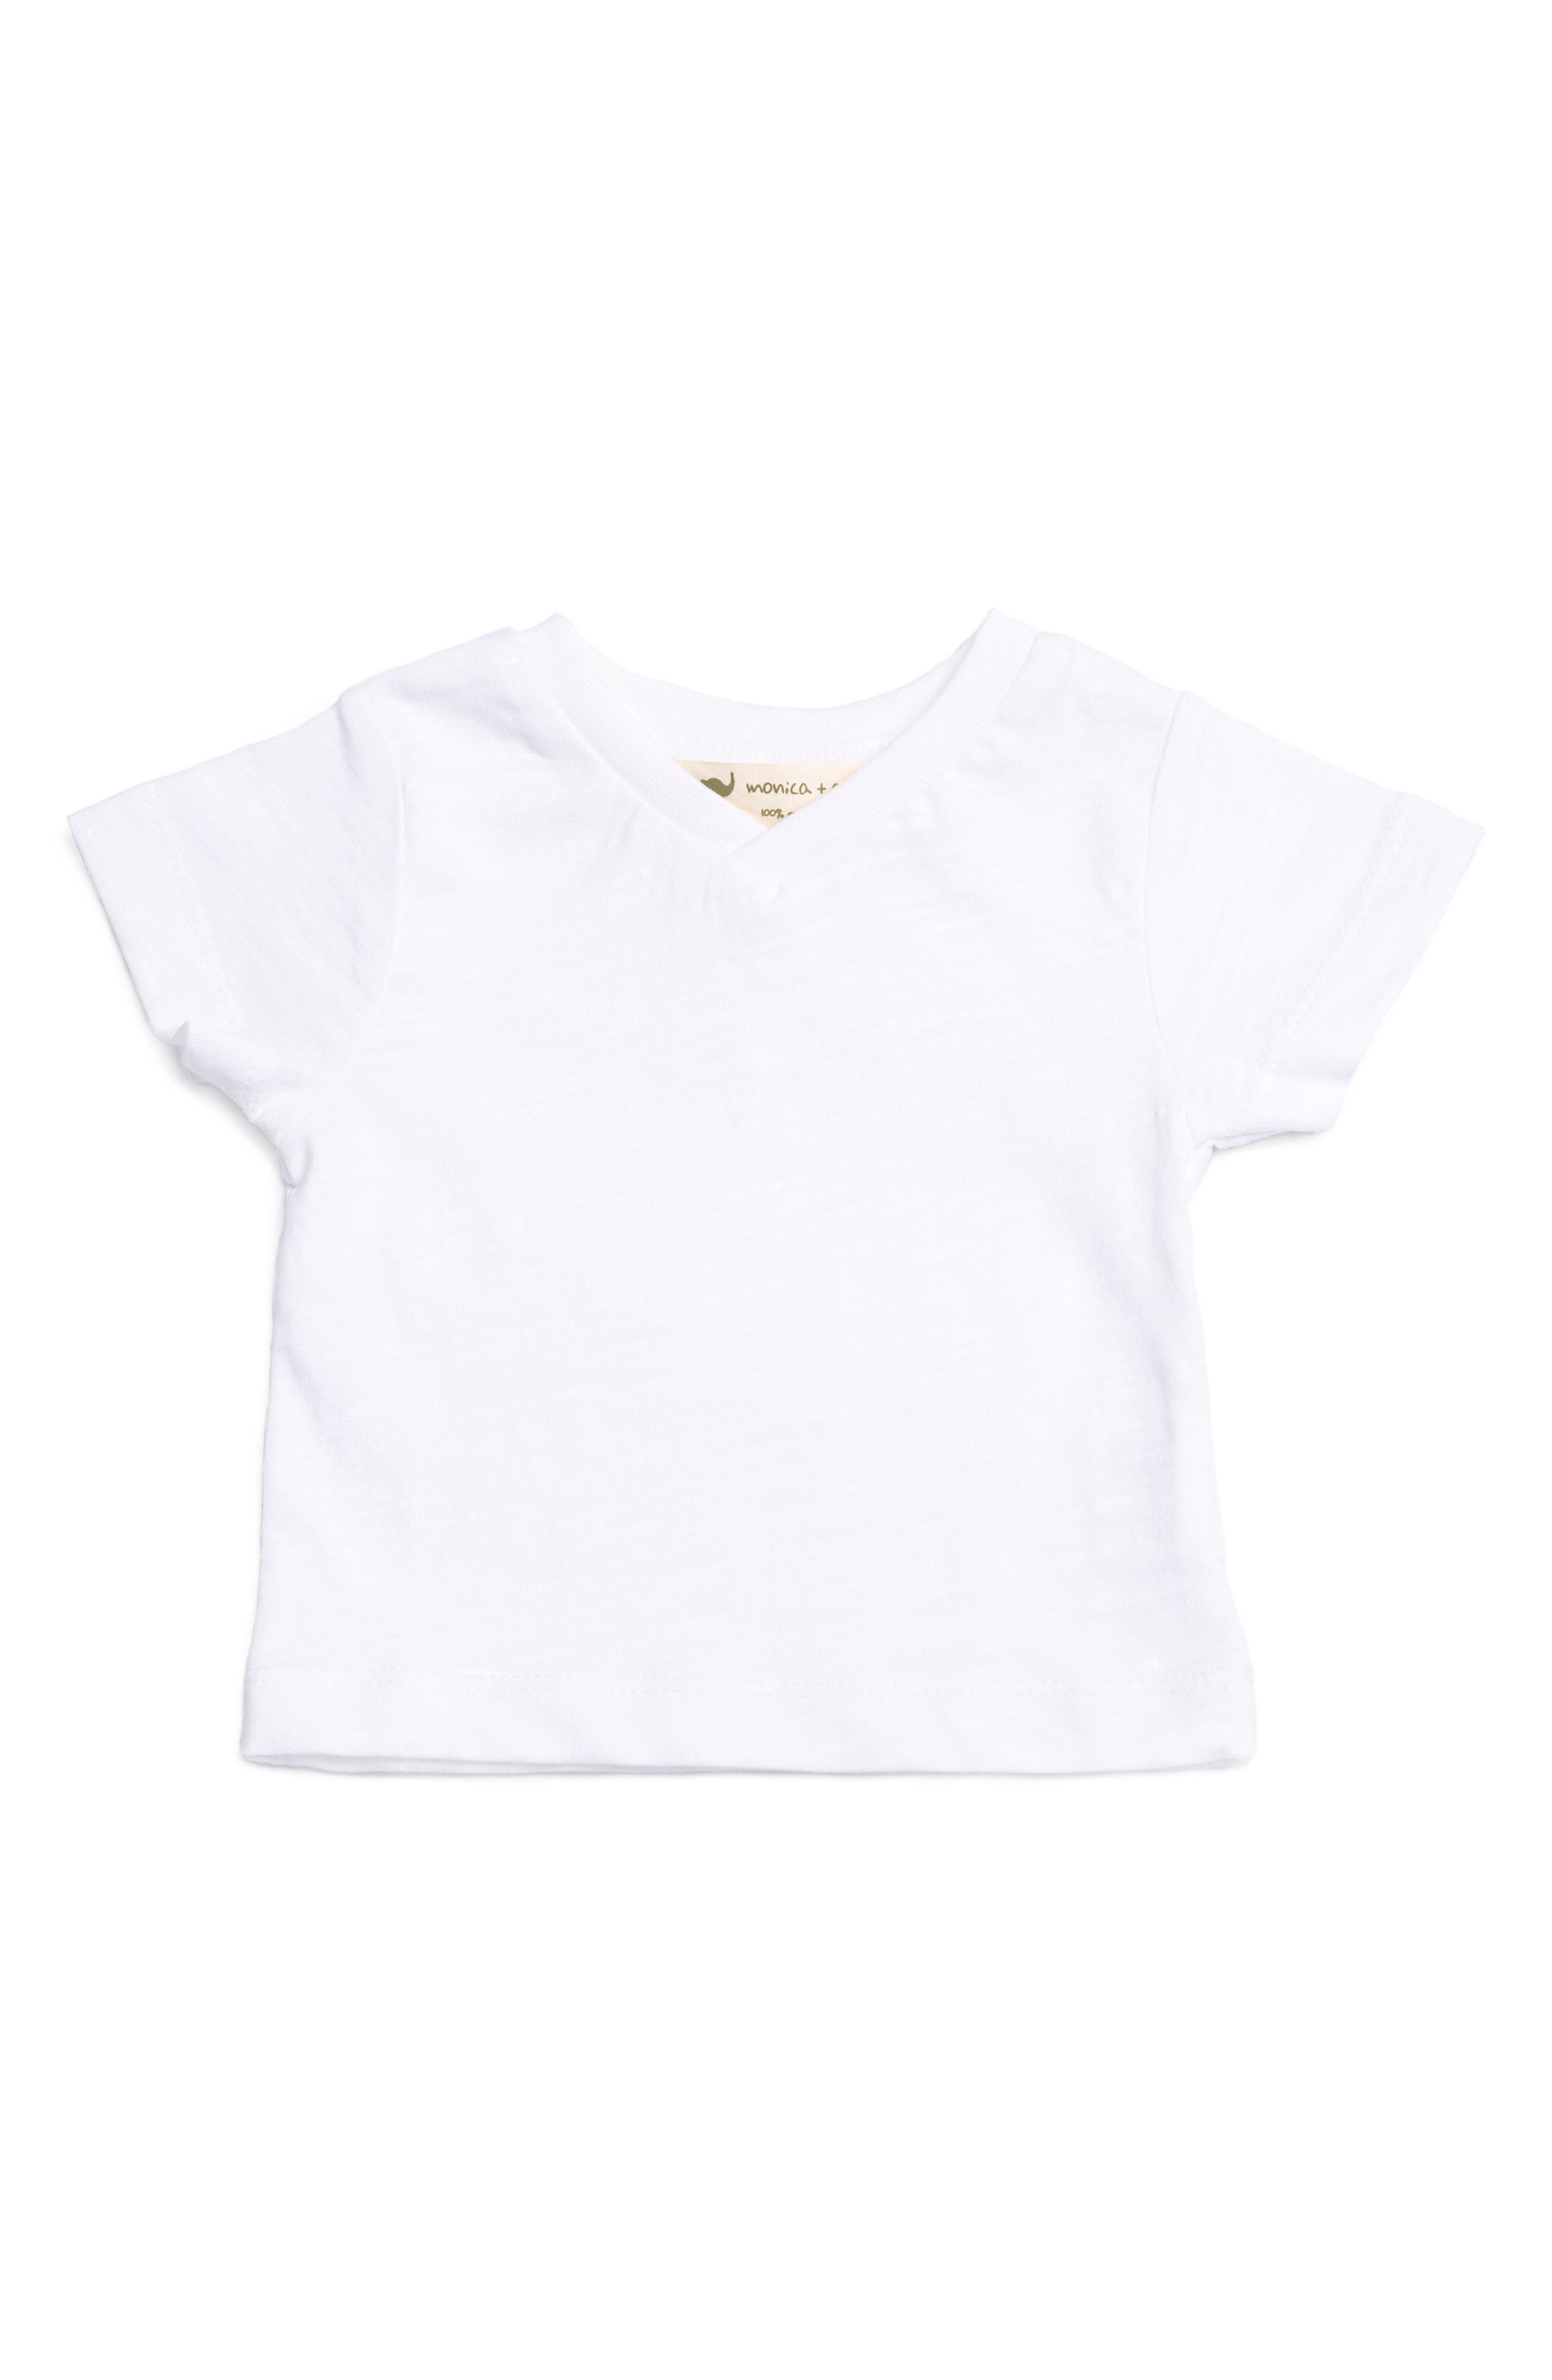 Alternate Image 1 Selected - Monica + Andy Classic V-Neck T-Shirt (Toddler Boys)